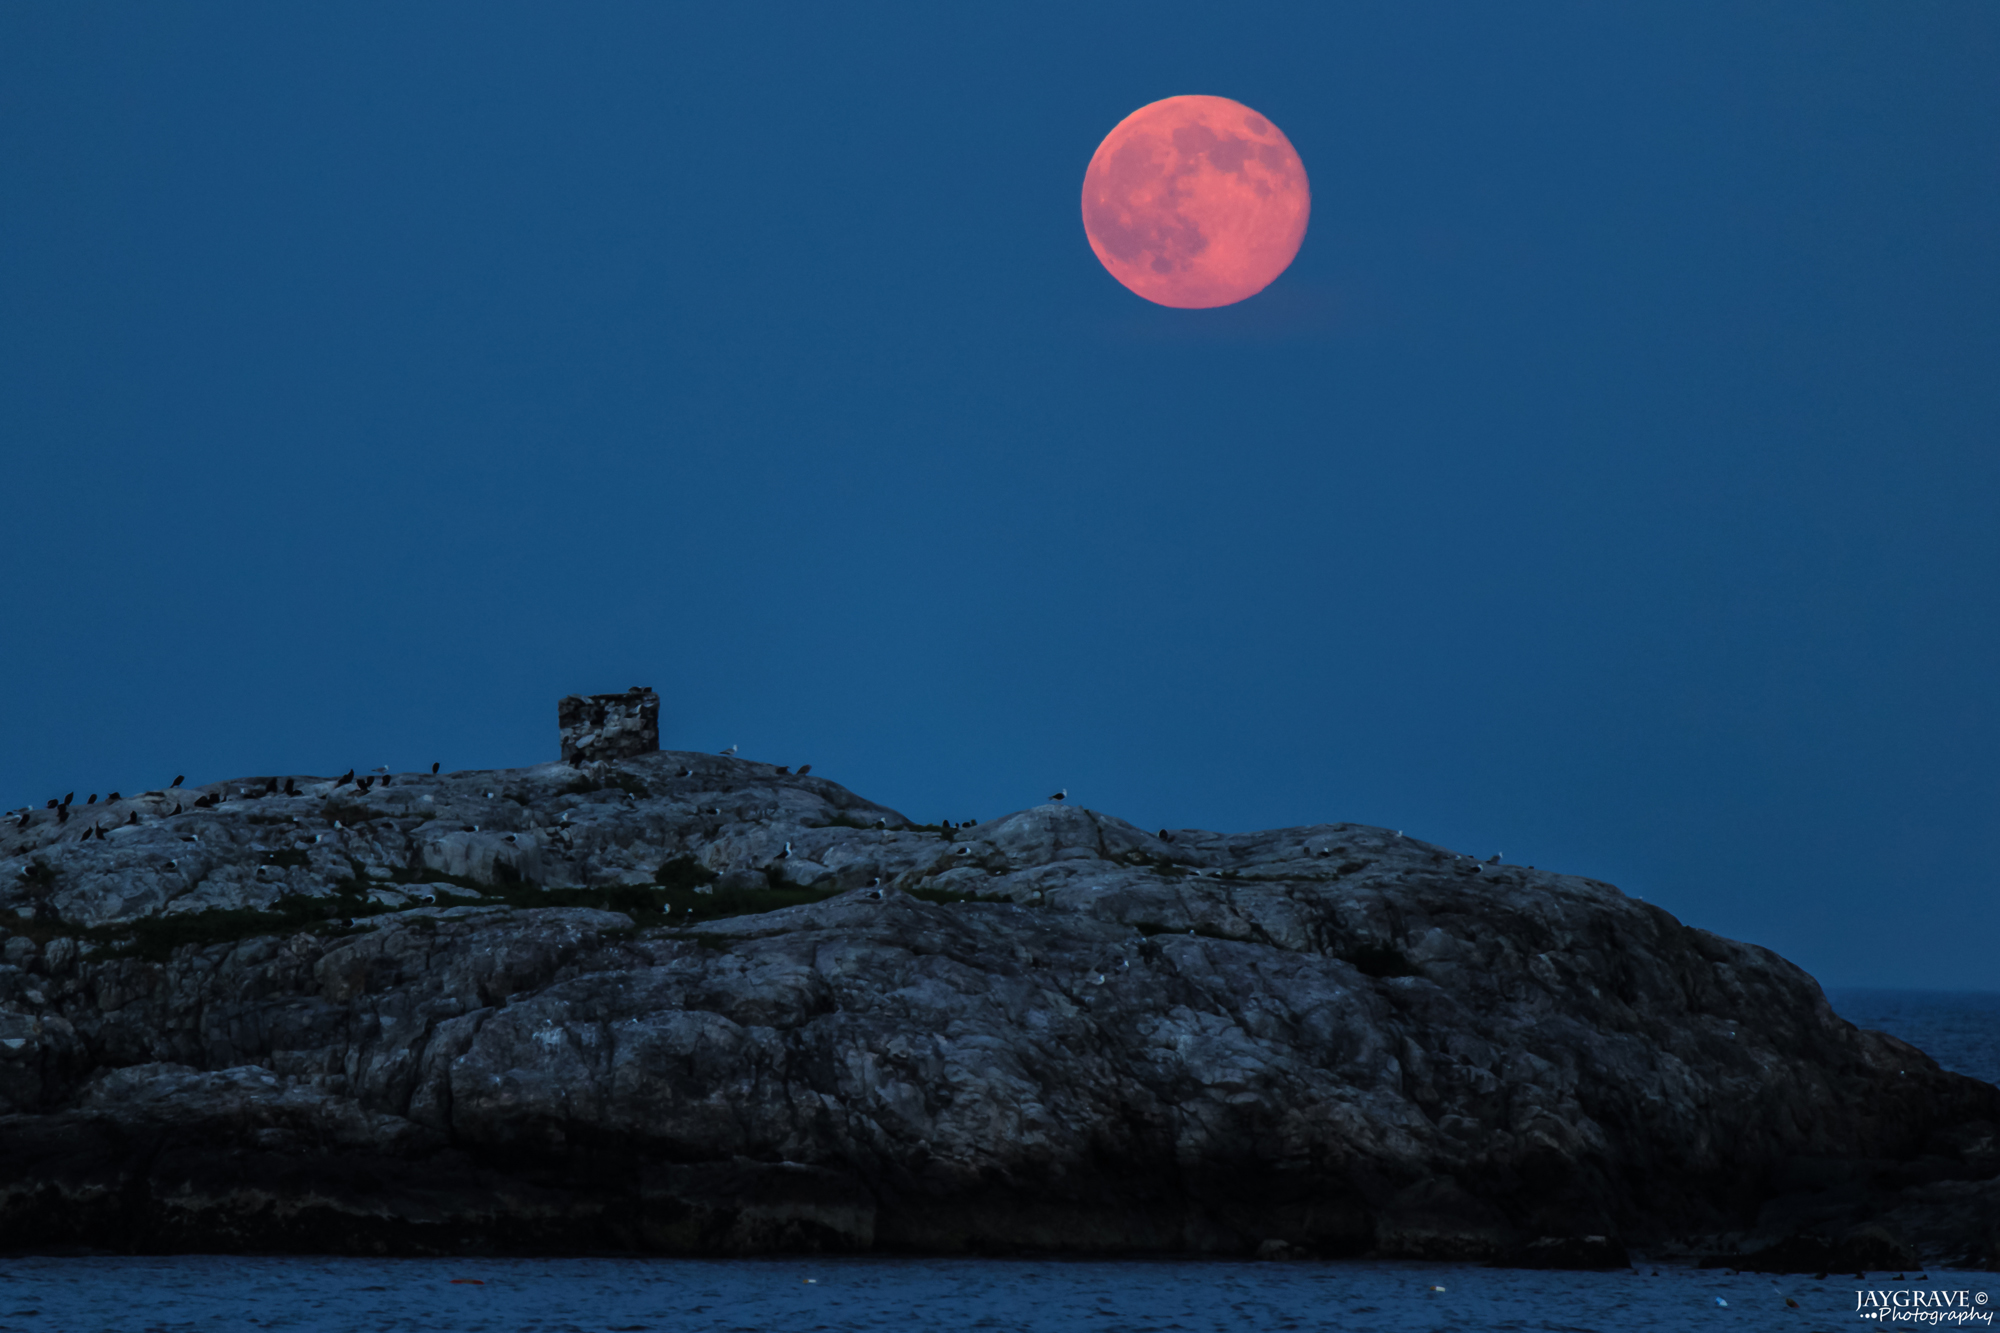 Supermoon of July 12, 2014: By John Gravell